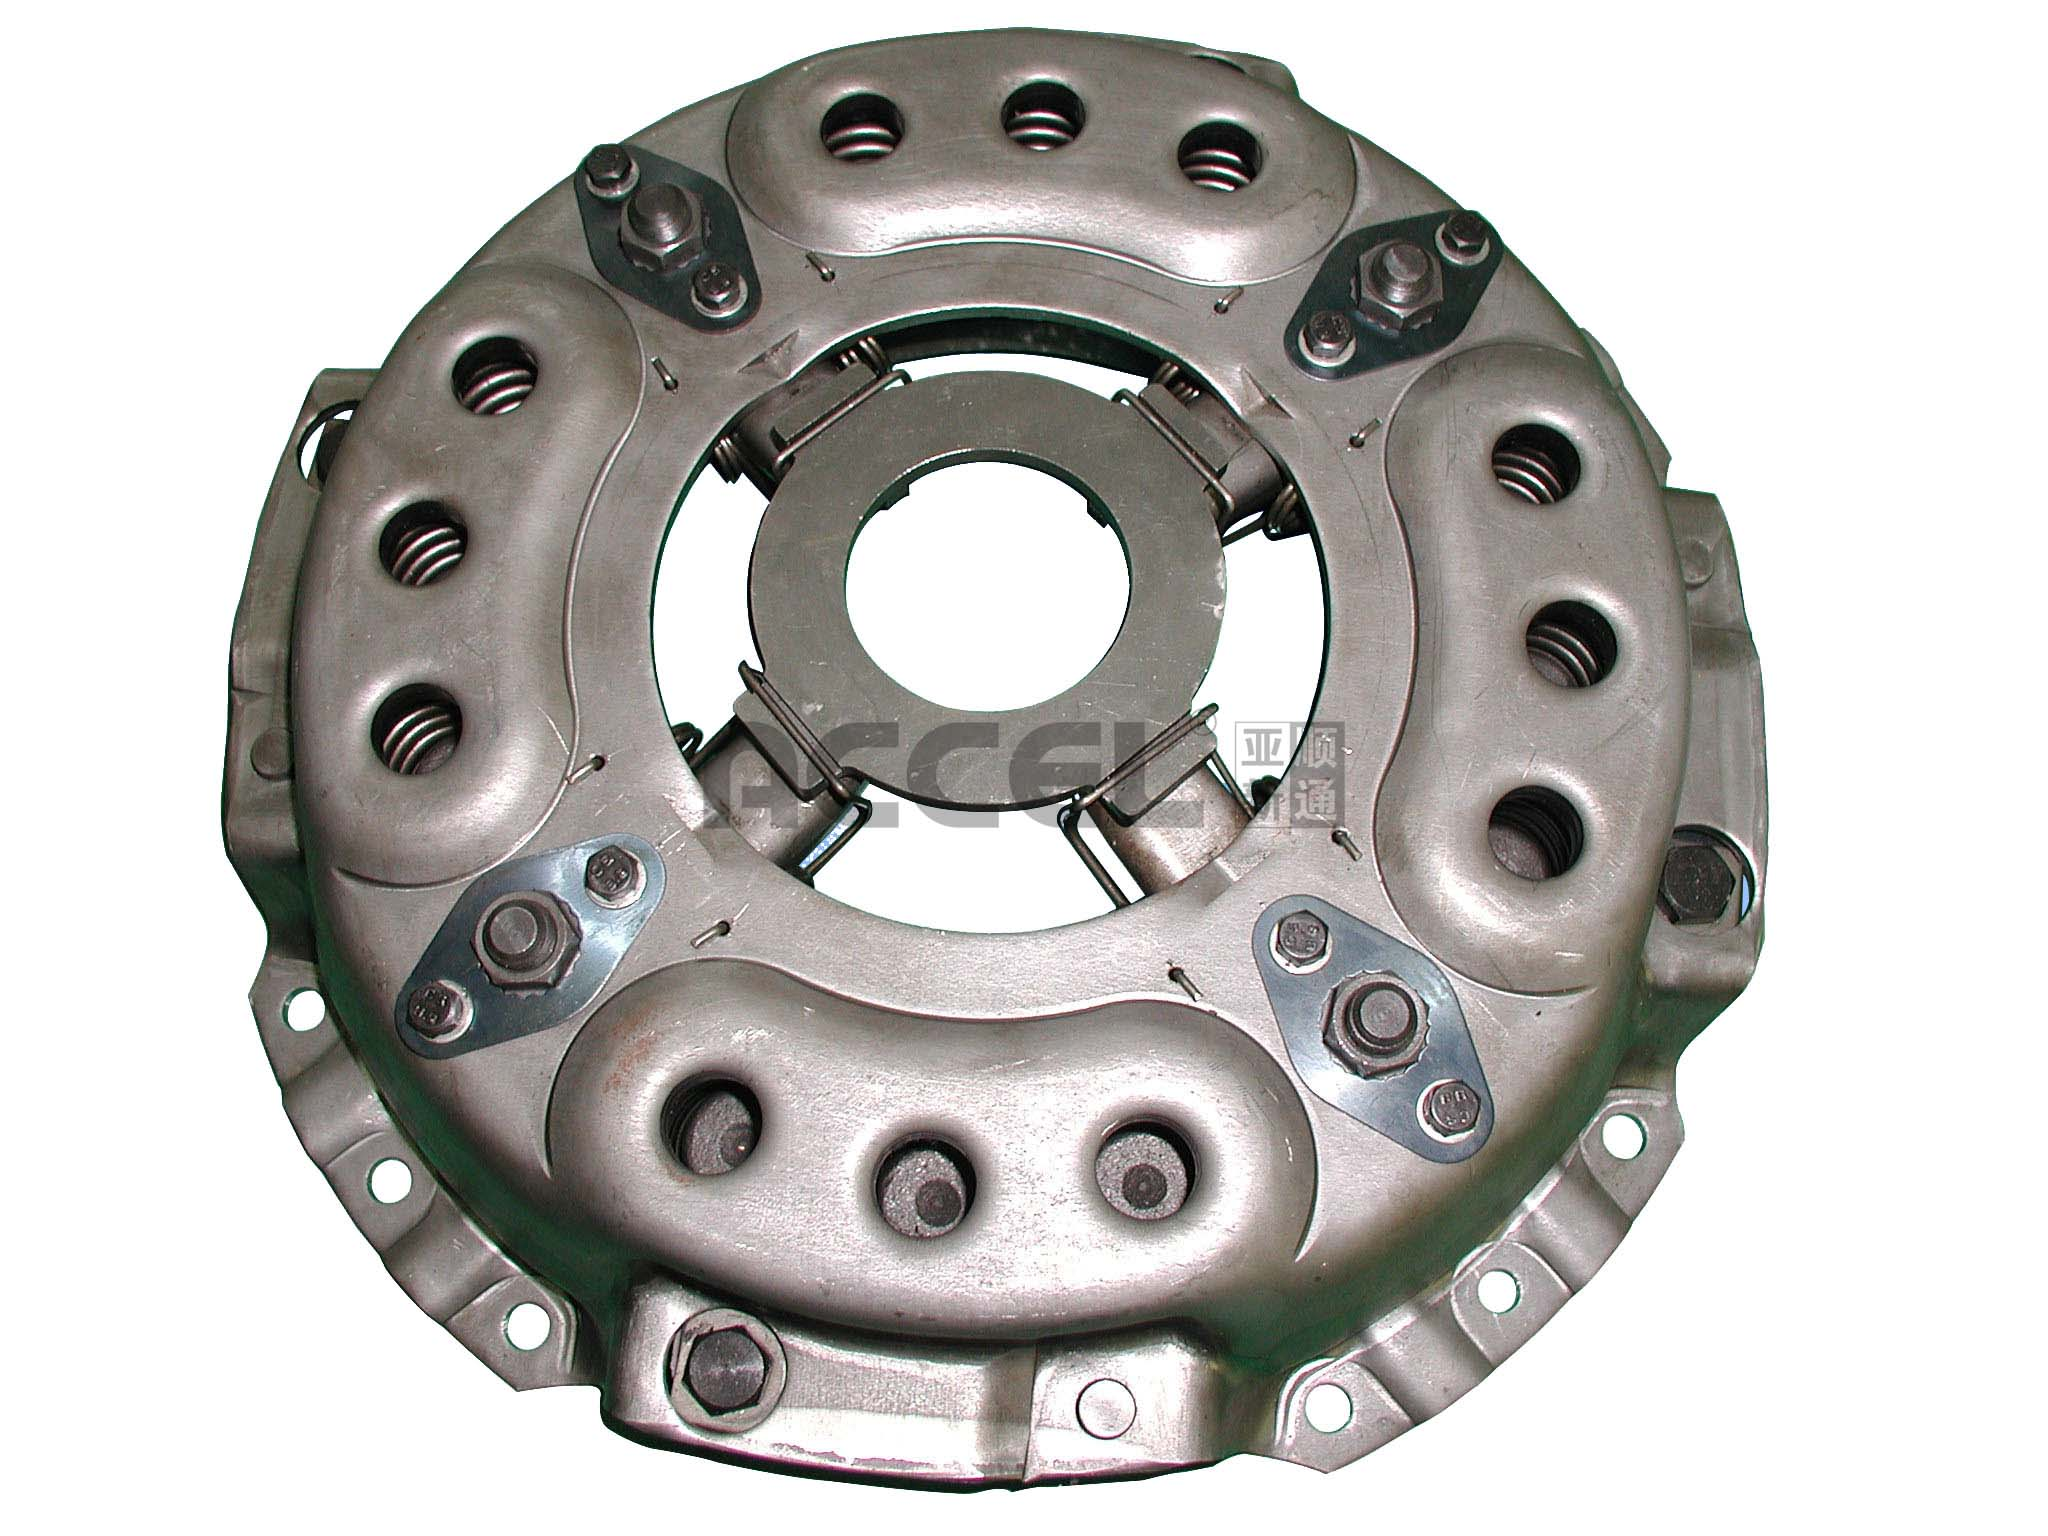 Clutch Cover/OE:MFC507/325*210*368/CHN-004/HINO/LY151/31210-1180/30210-Z5065/1-31220-393-0/ME521106/ISC602/41200-55000/SCHD-012